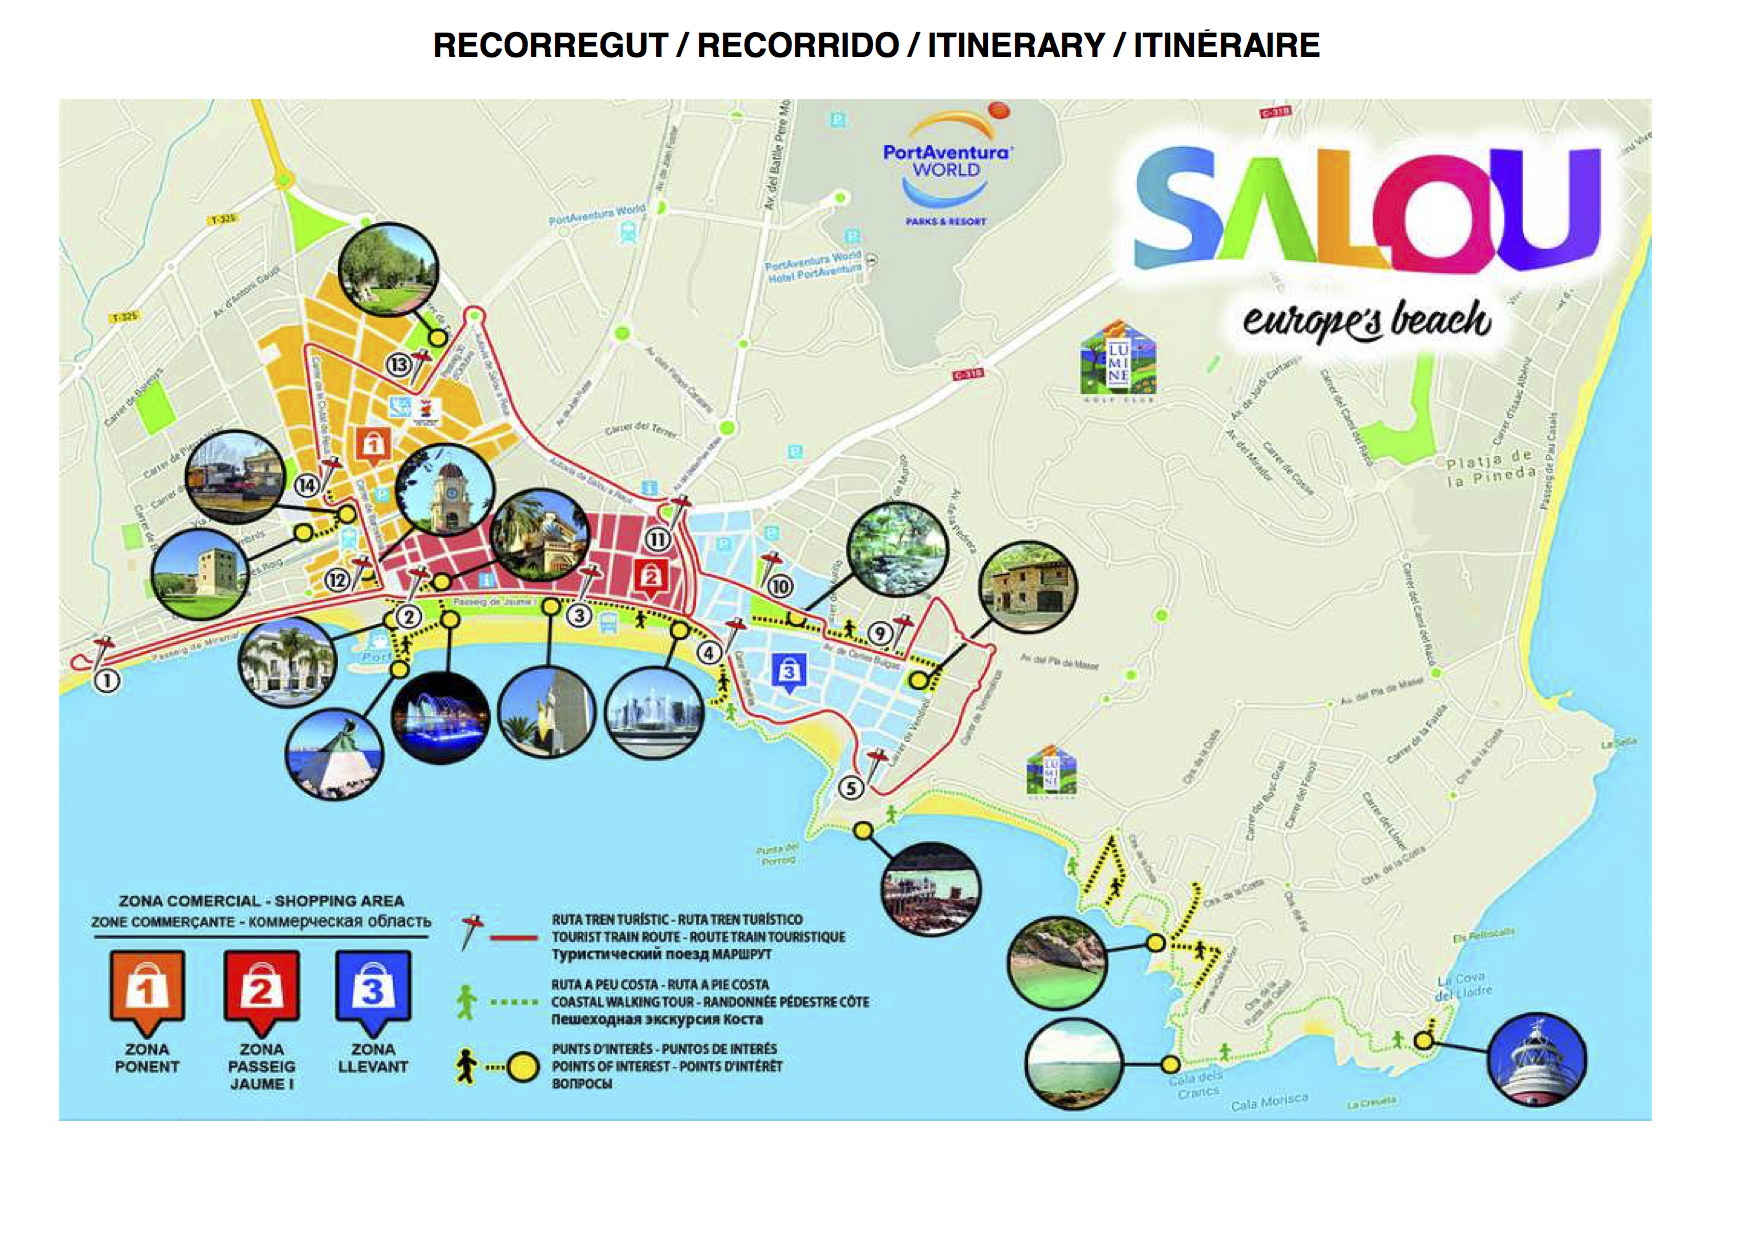 Map Of Spain Showing Salou.Live A Great Experience With The Renovated Tourist Train Of Salou